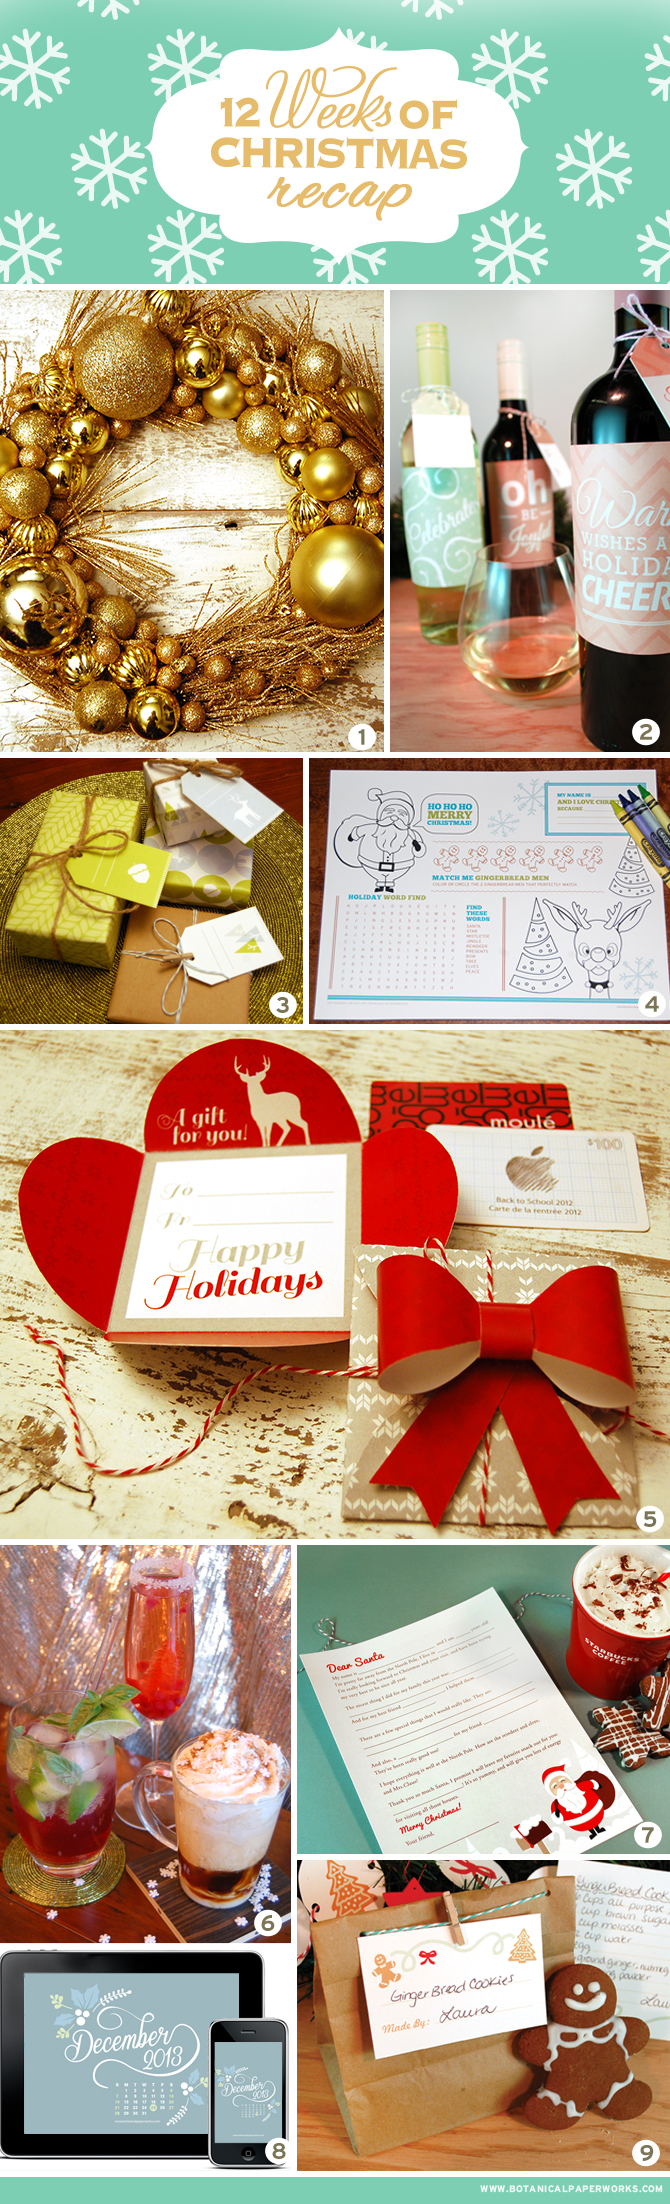 Here's a recap of all the totally fun and stylish freebies that were part of the 12 Weeks of Christmas - enjoy!